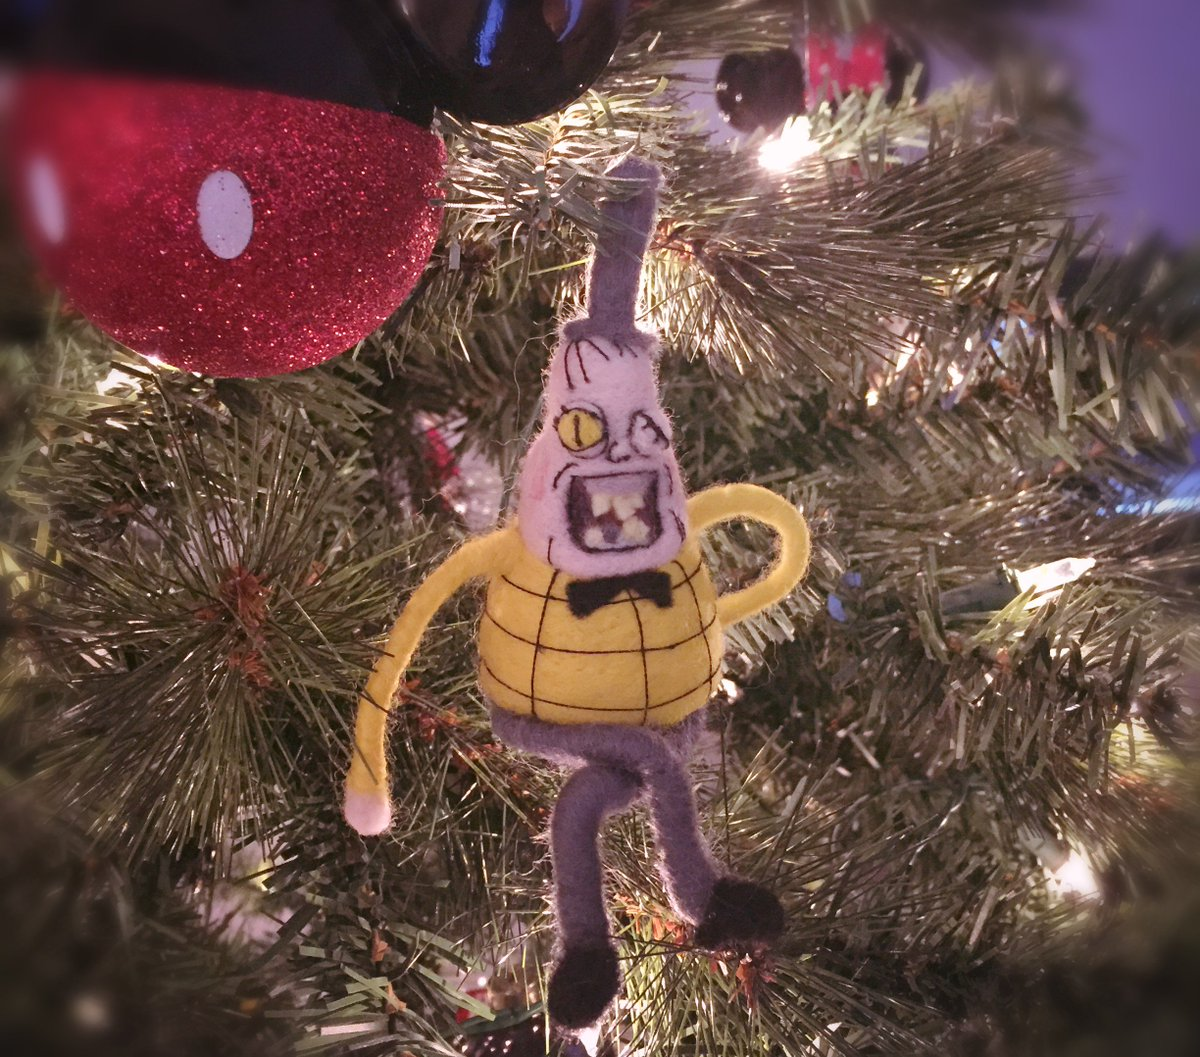 No, YOUR ornaments are scaring the children! ;D #GravityFalls @_AlexHirsch https://t.co/RTTYXHgRne